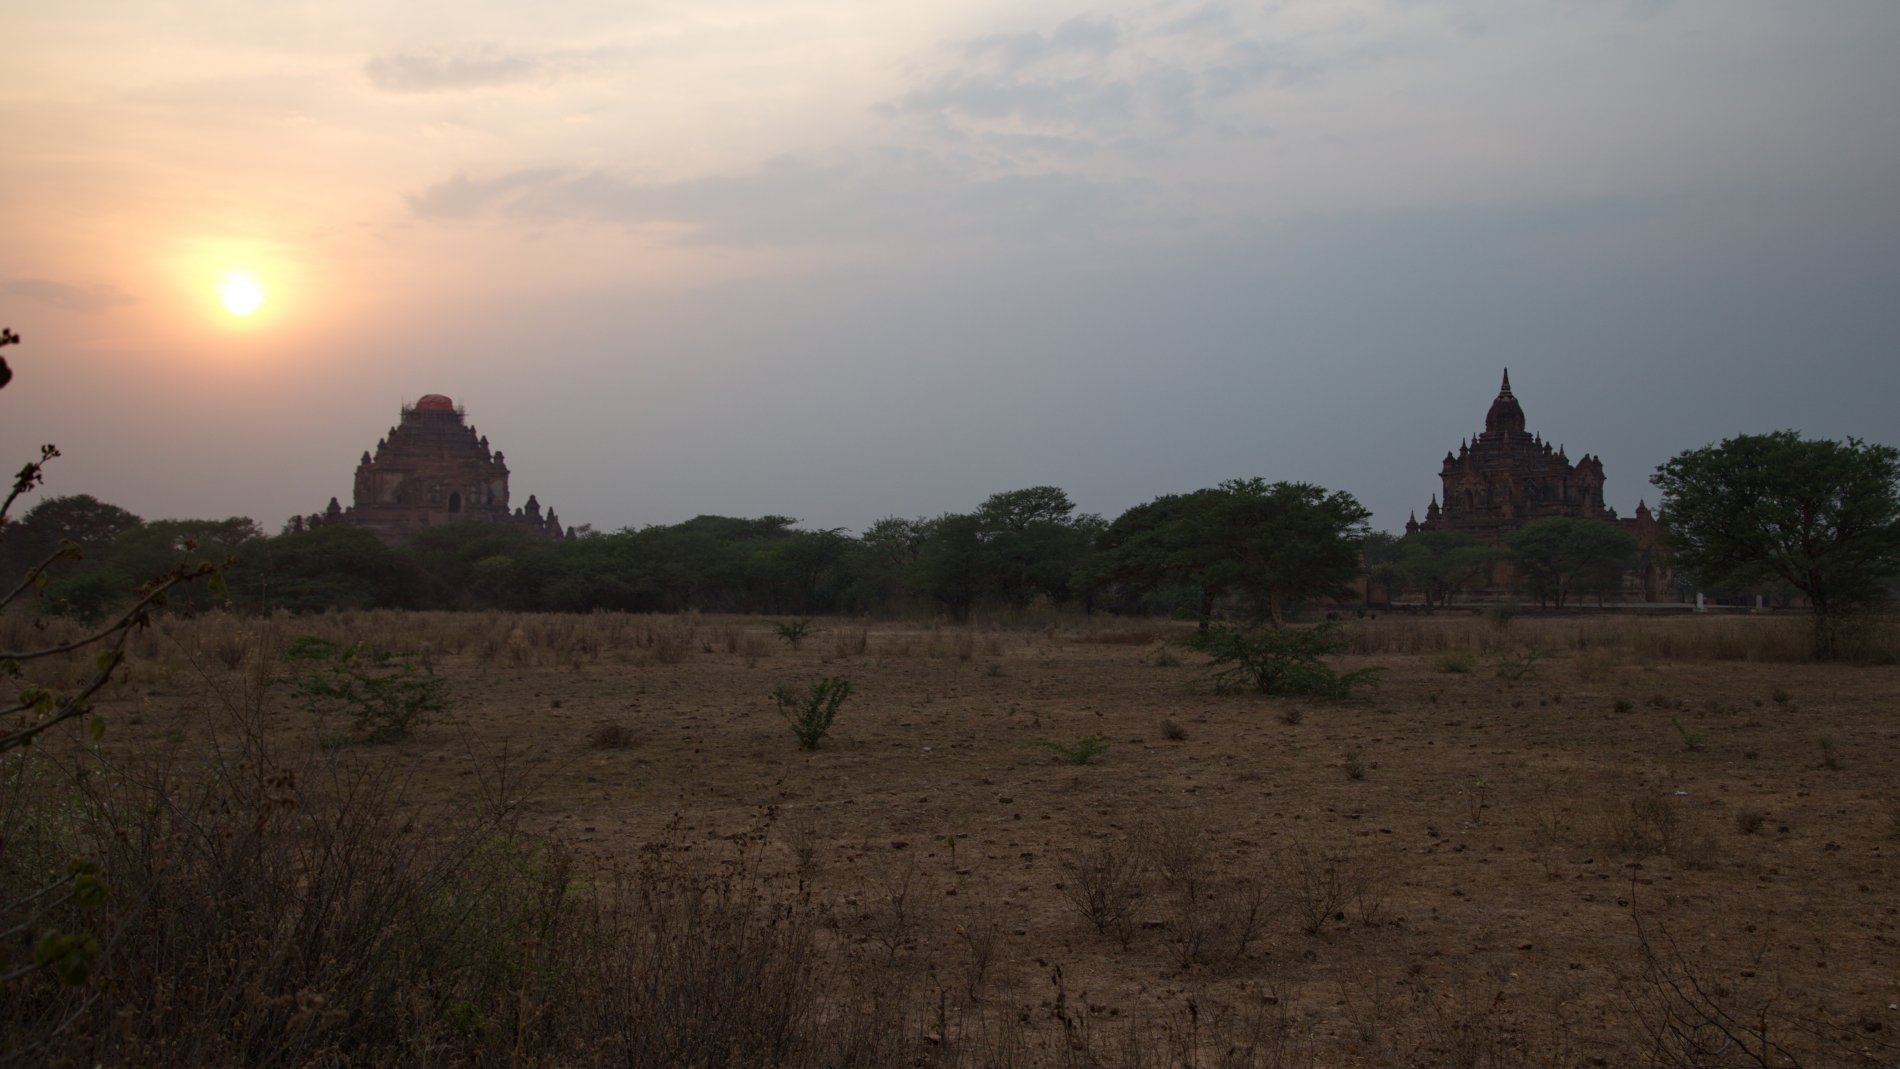 Bagan_036.jpg-commment